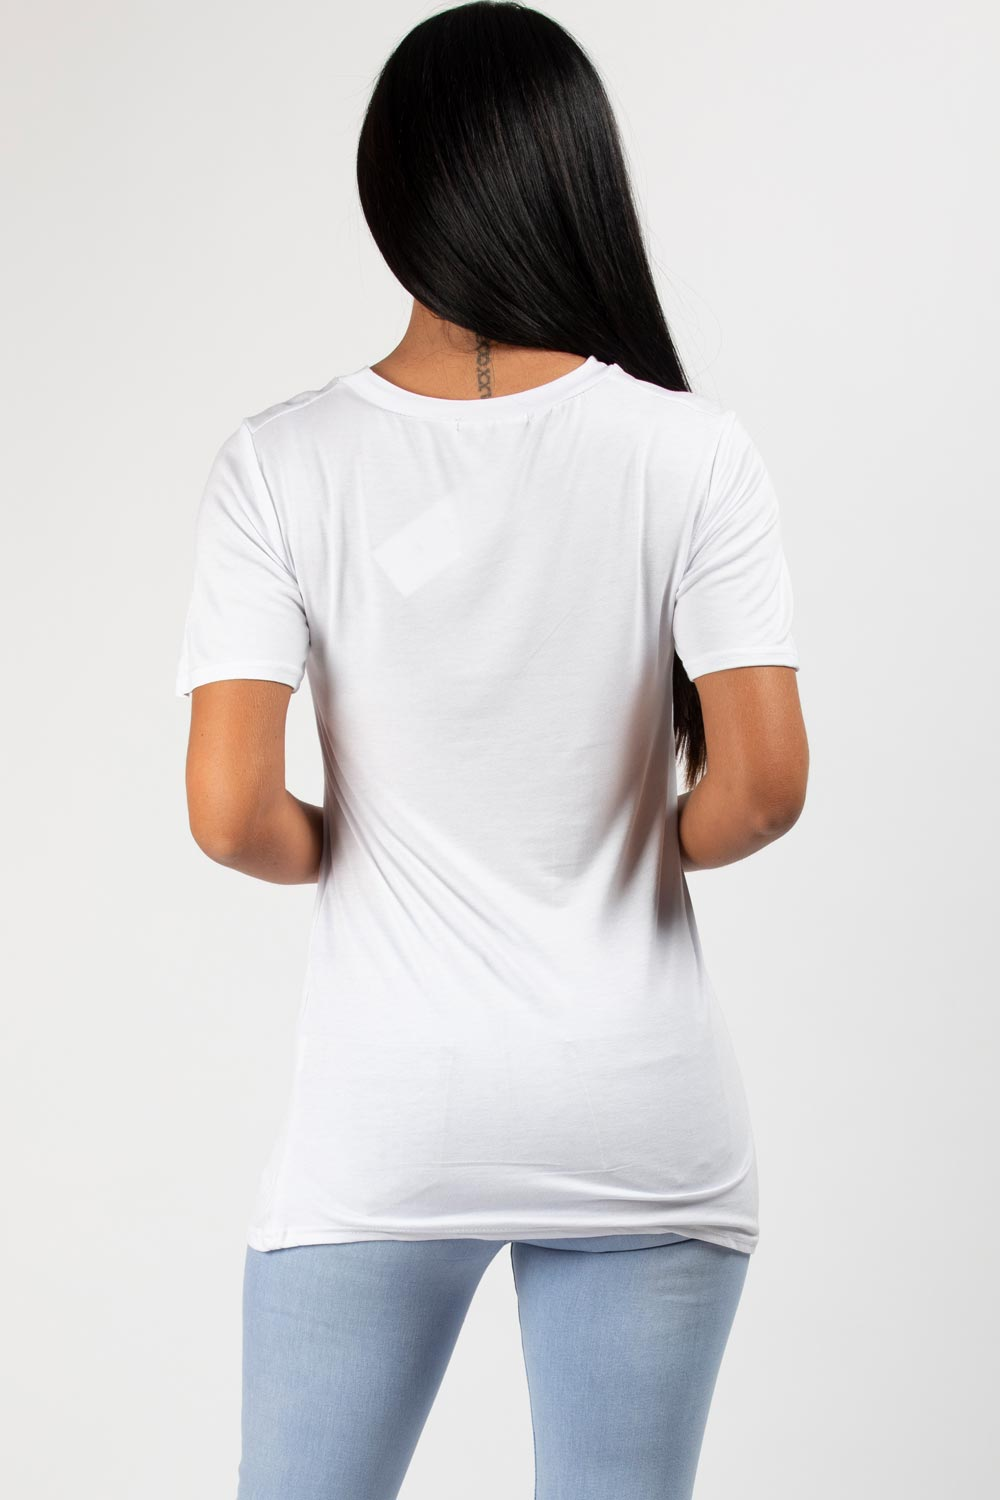 white yves saint laurent inspired top womens